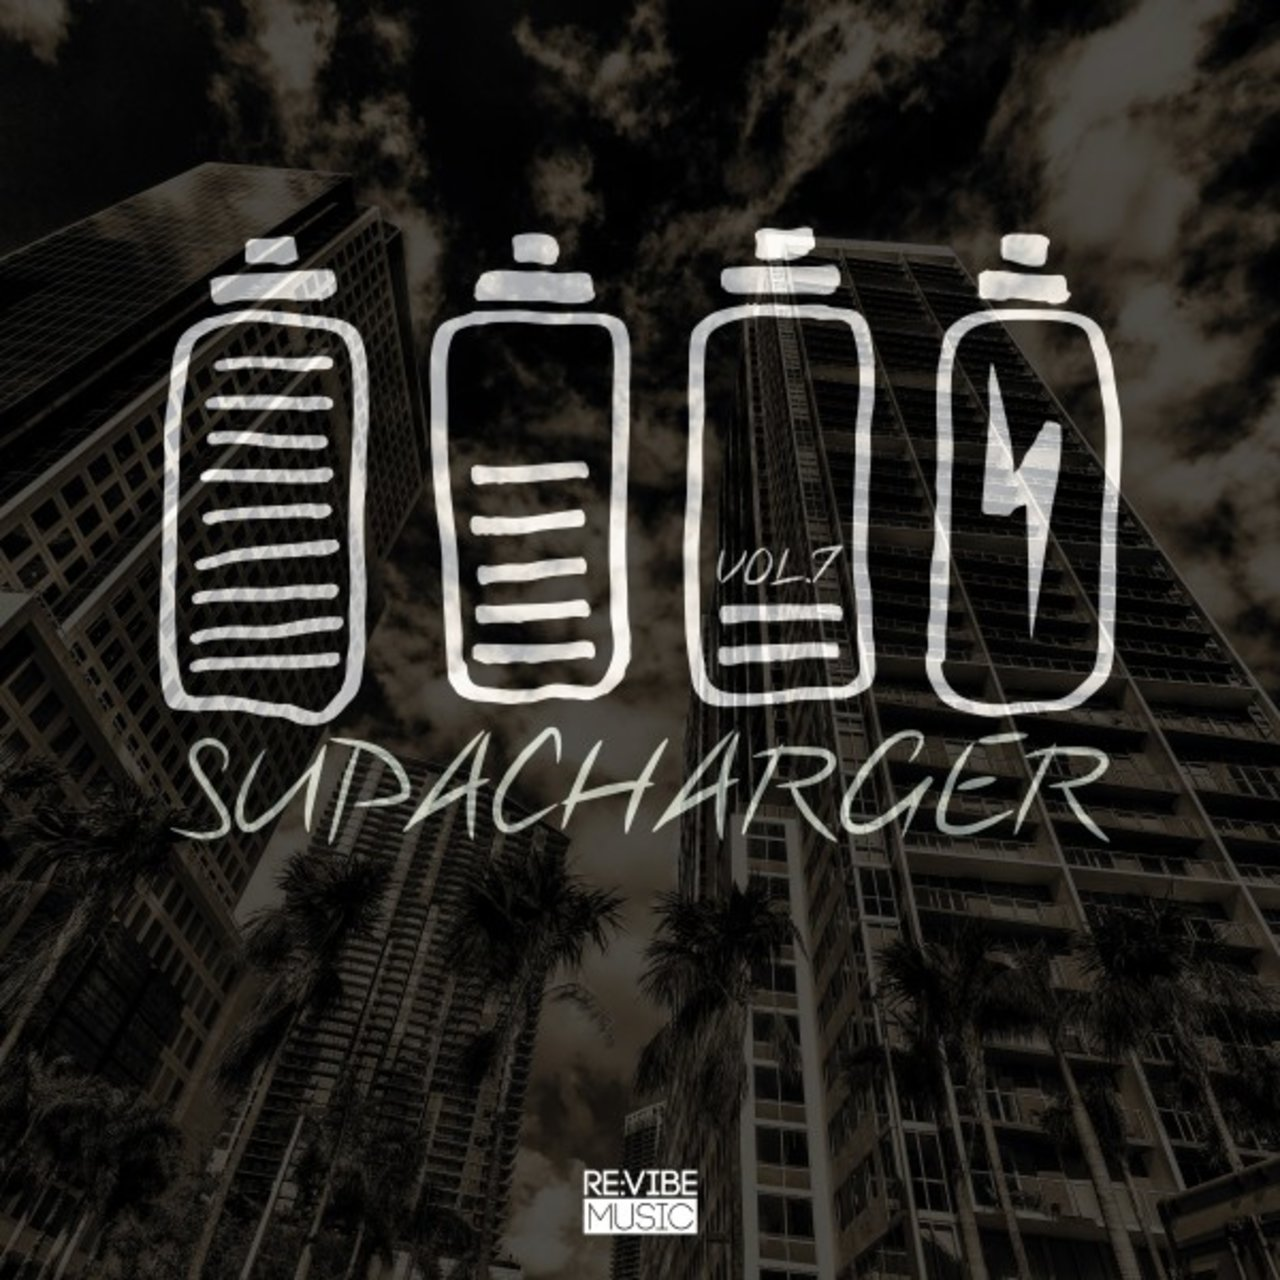 Supacharger, Vol. 7